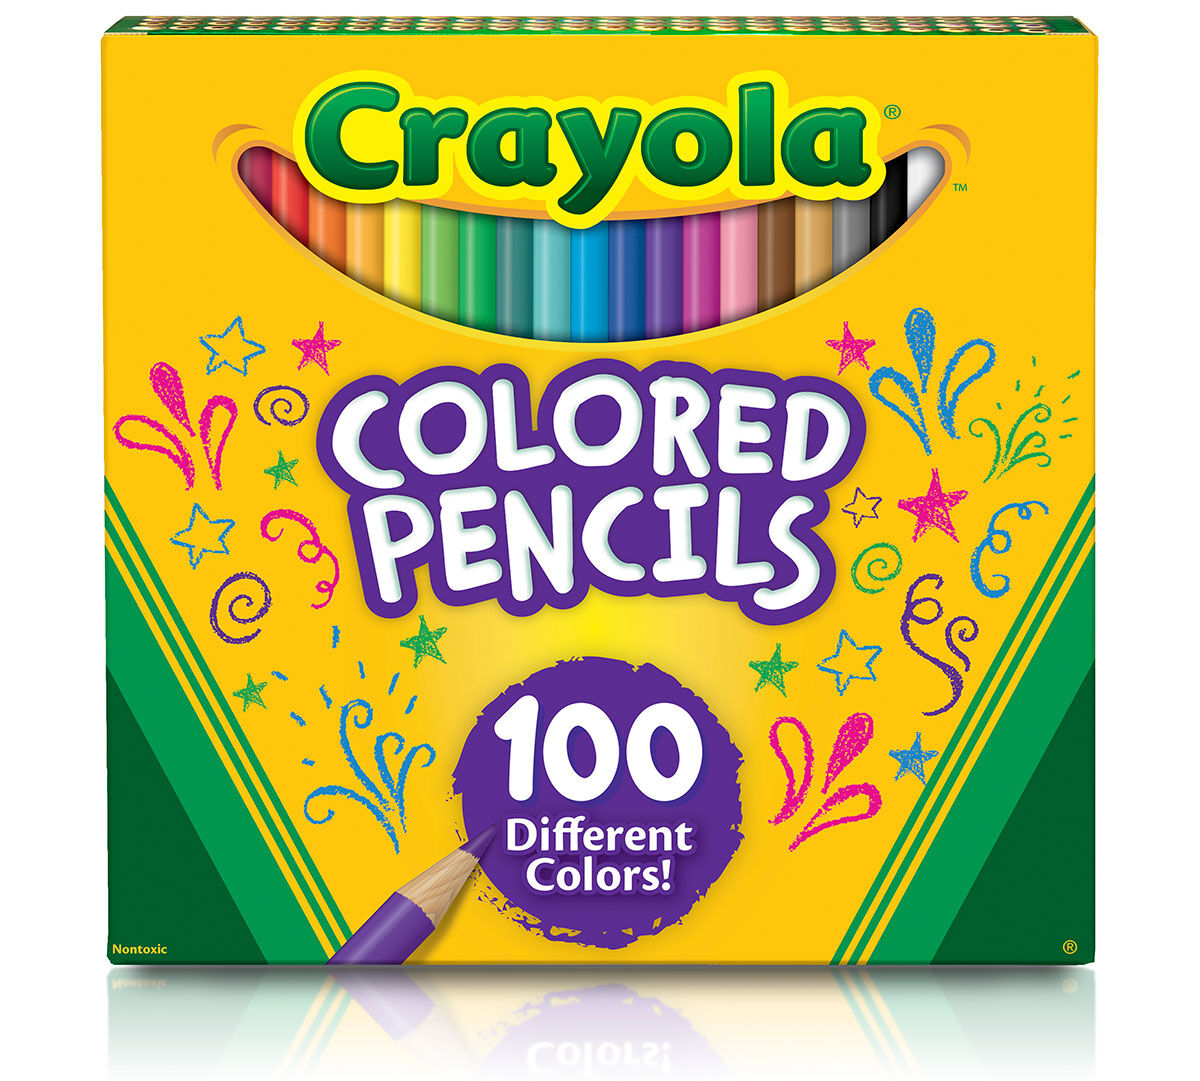 Crayola Colored Pencils, 100 Count, Vibrant Colors, Pre-sharpened ...